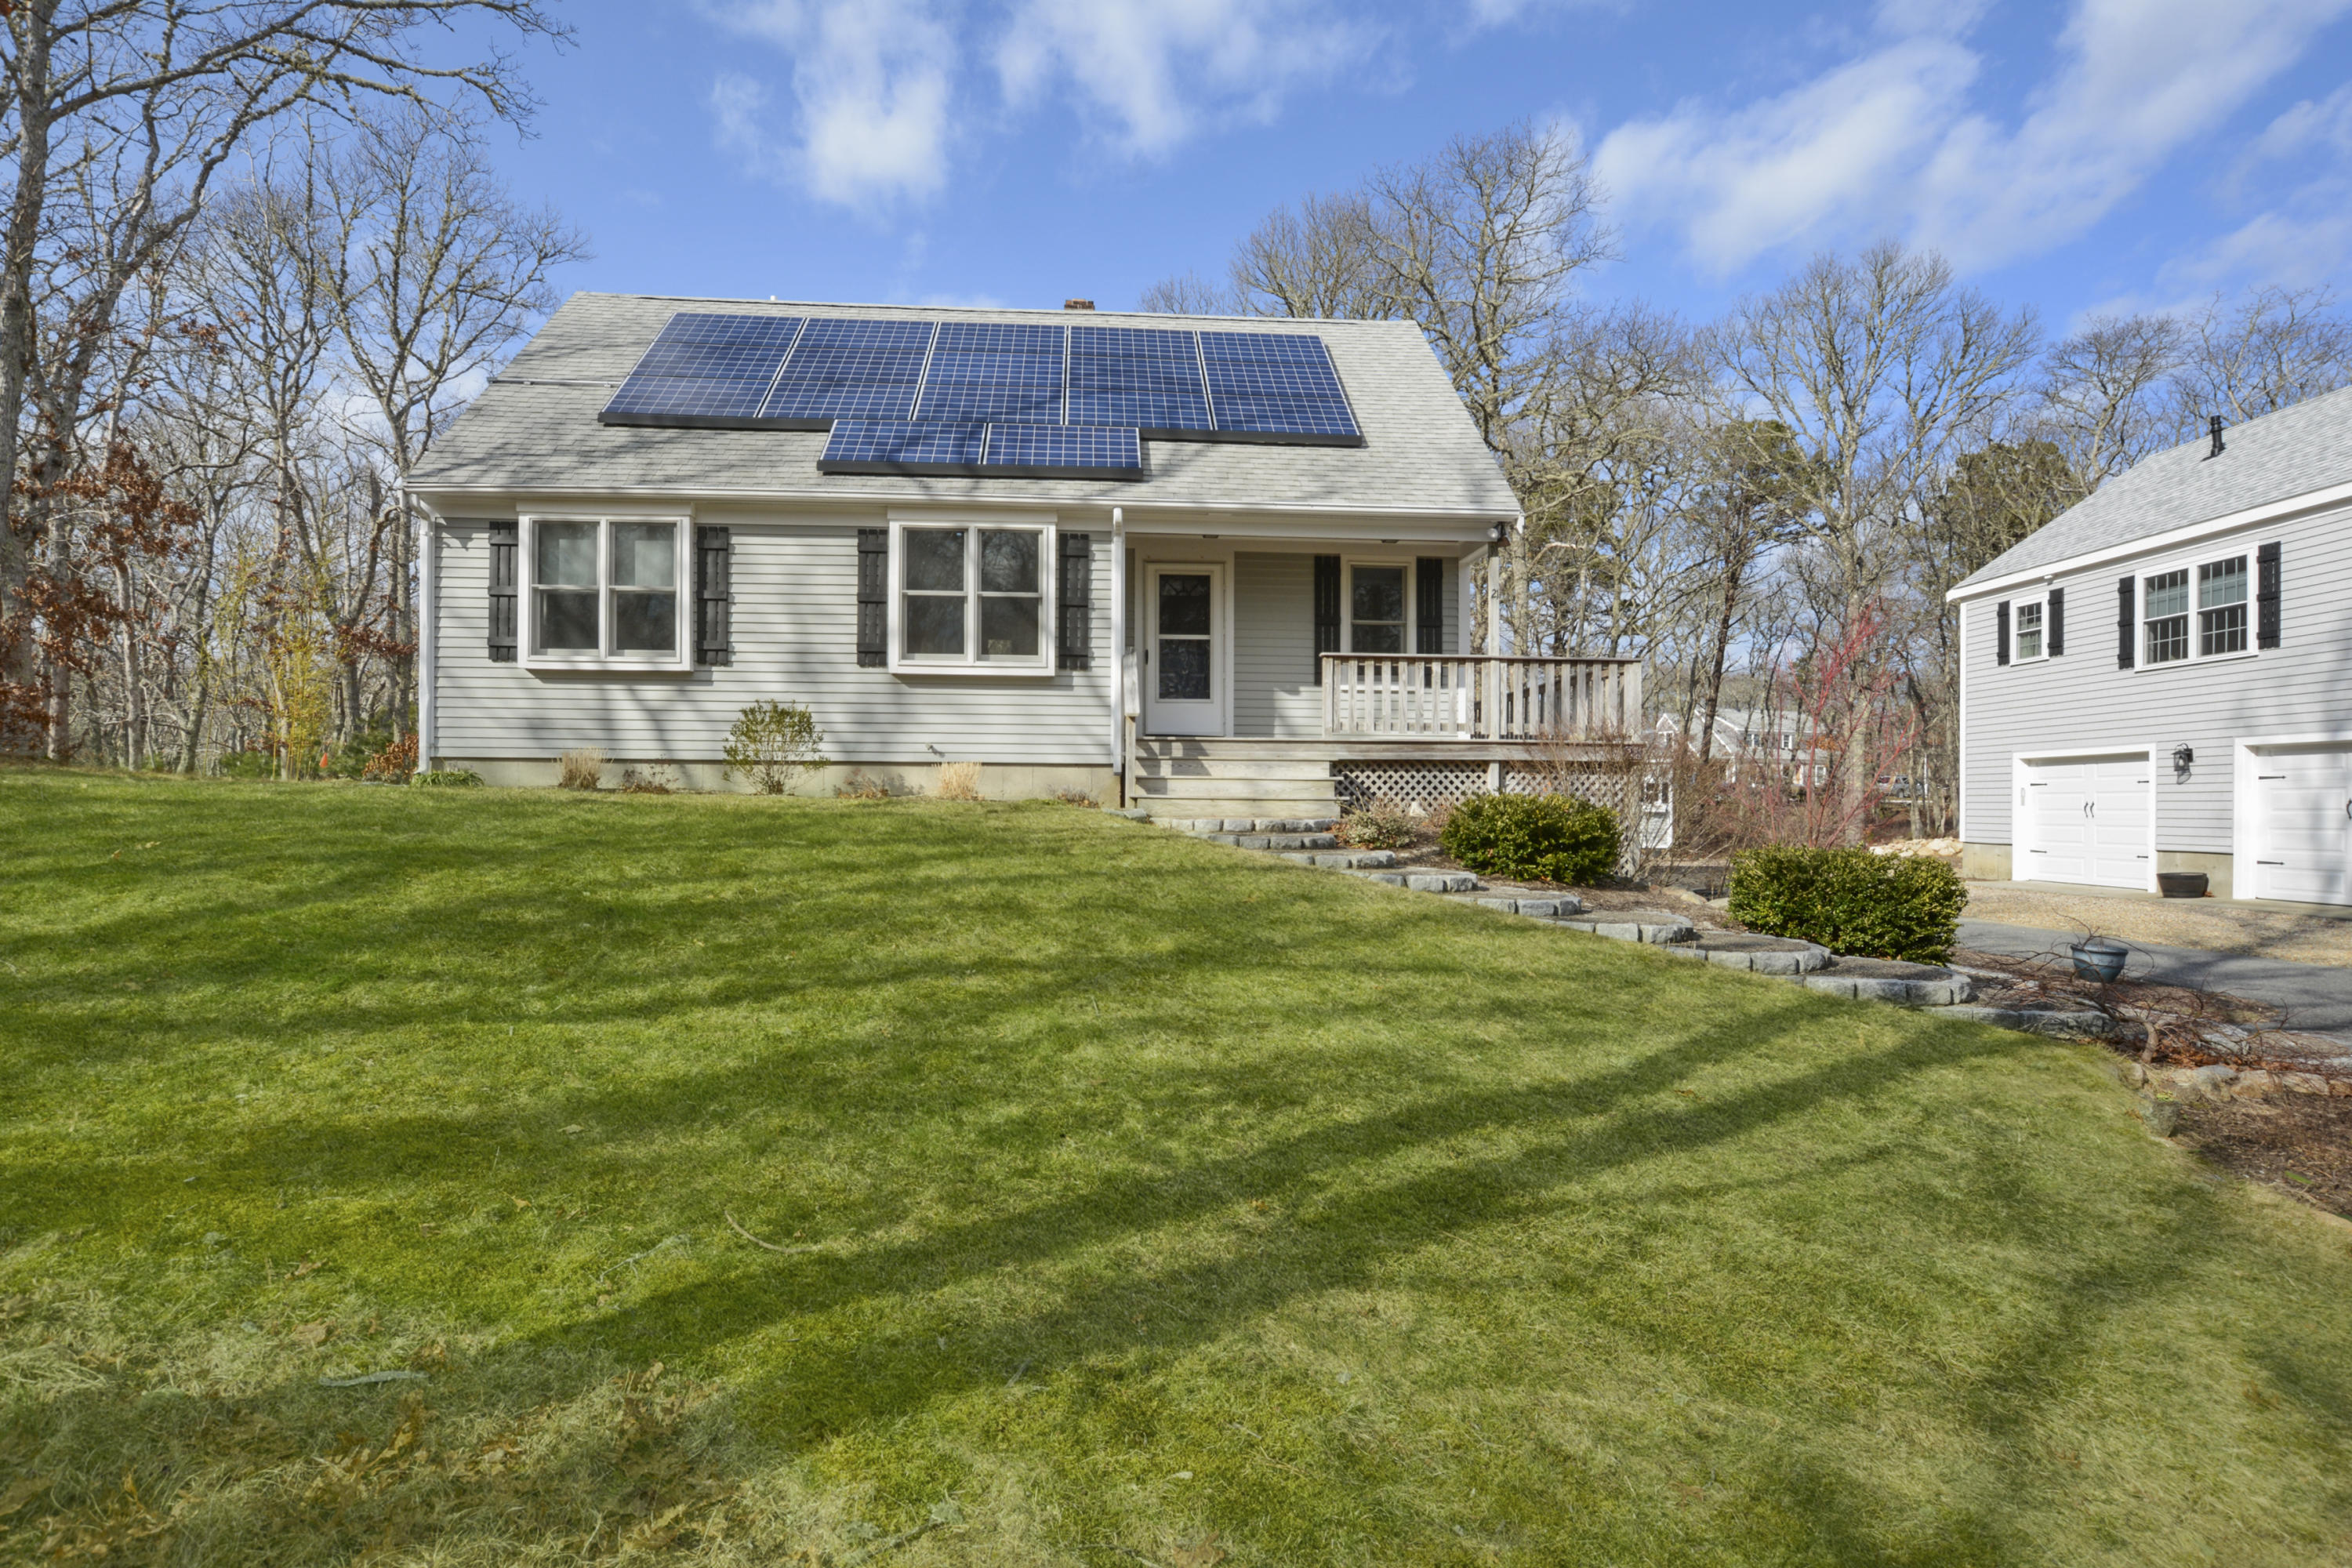 click to view more details 21 Topco Road, Brewster, MA 02631